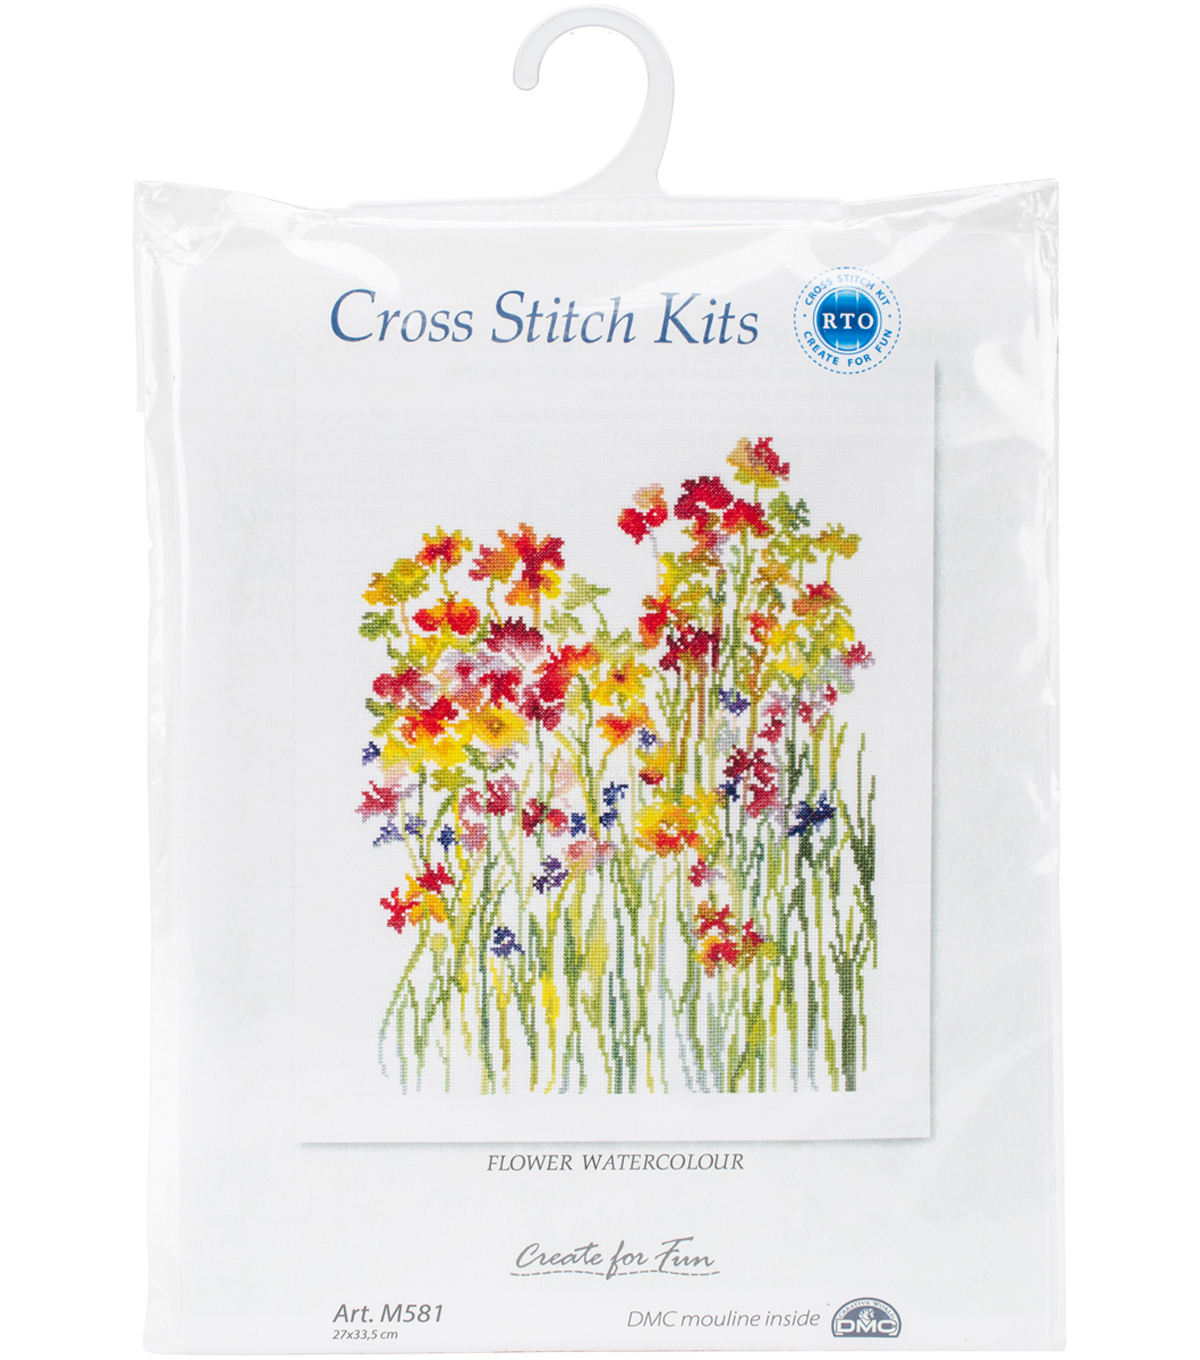 Flower Watercolour Counted Cross Stitch Kit 14 Count